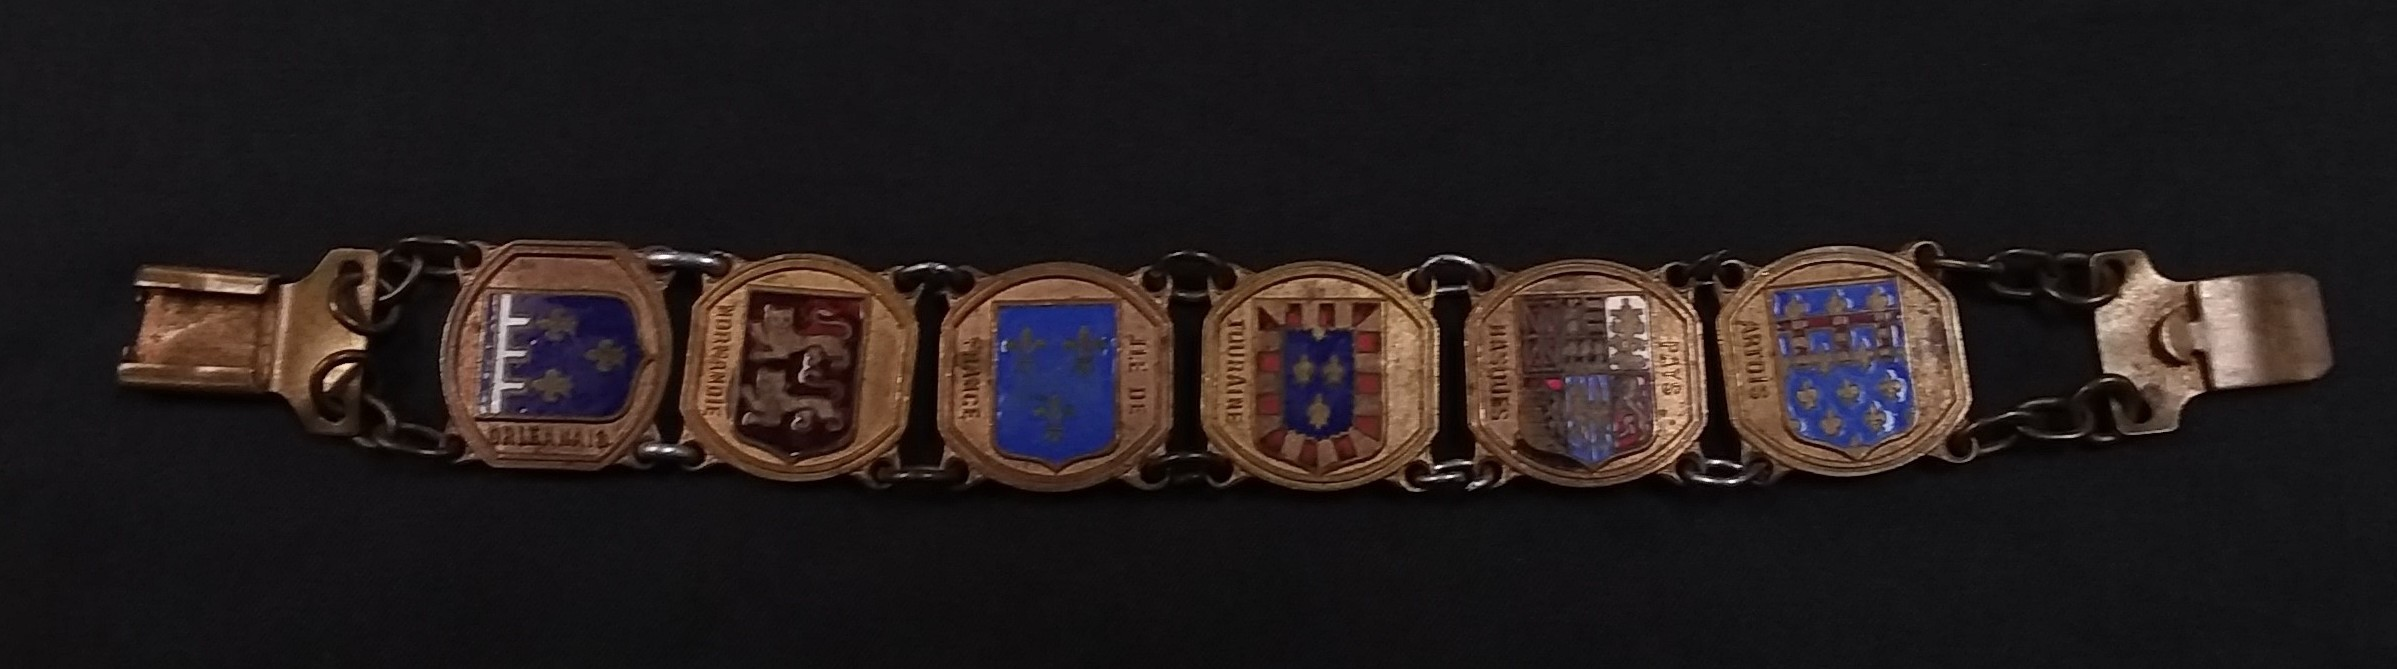 COLLECTIBLE UNIT CREST  BRACELET.